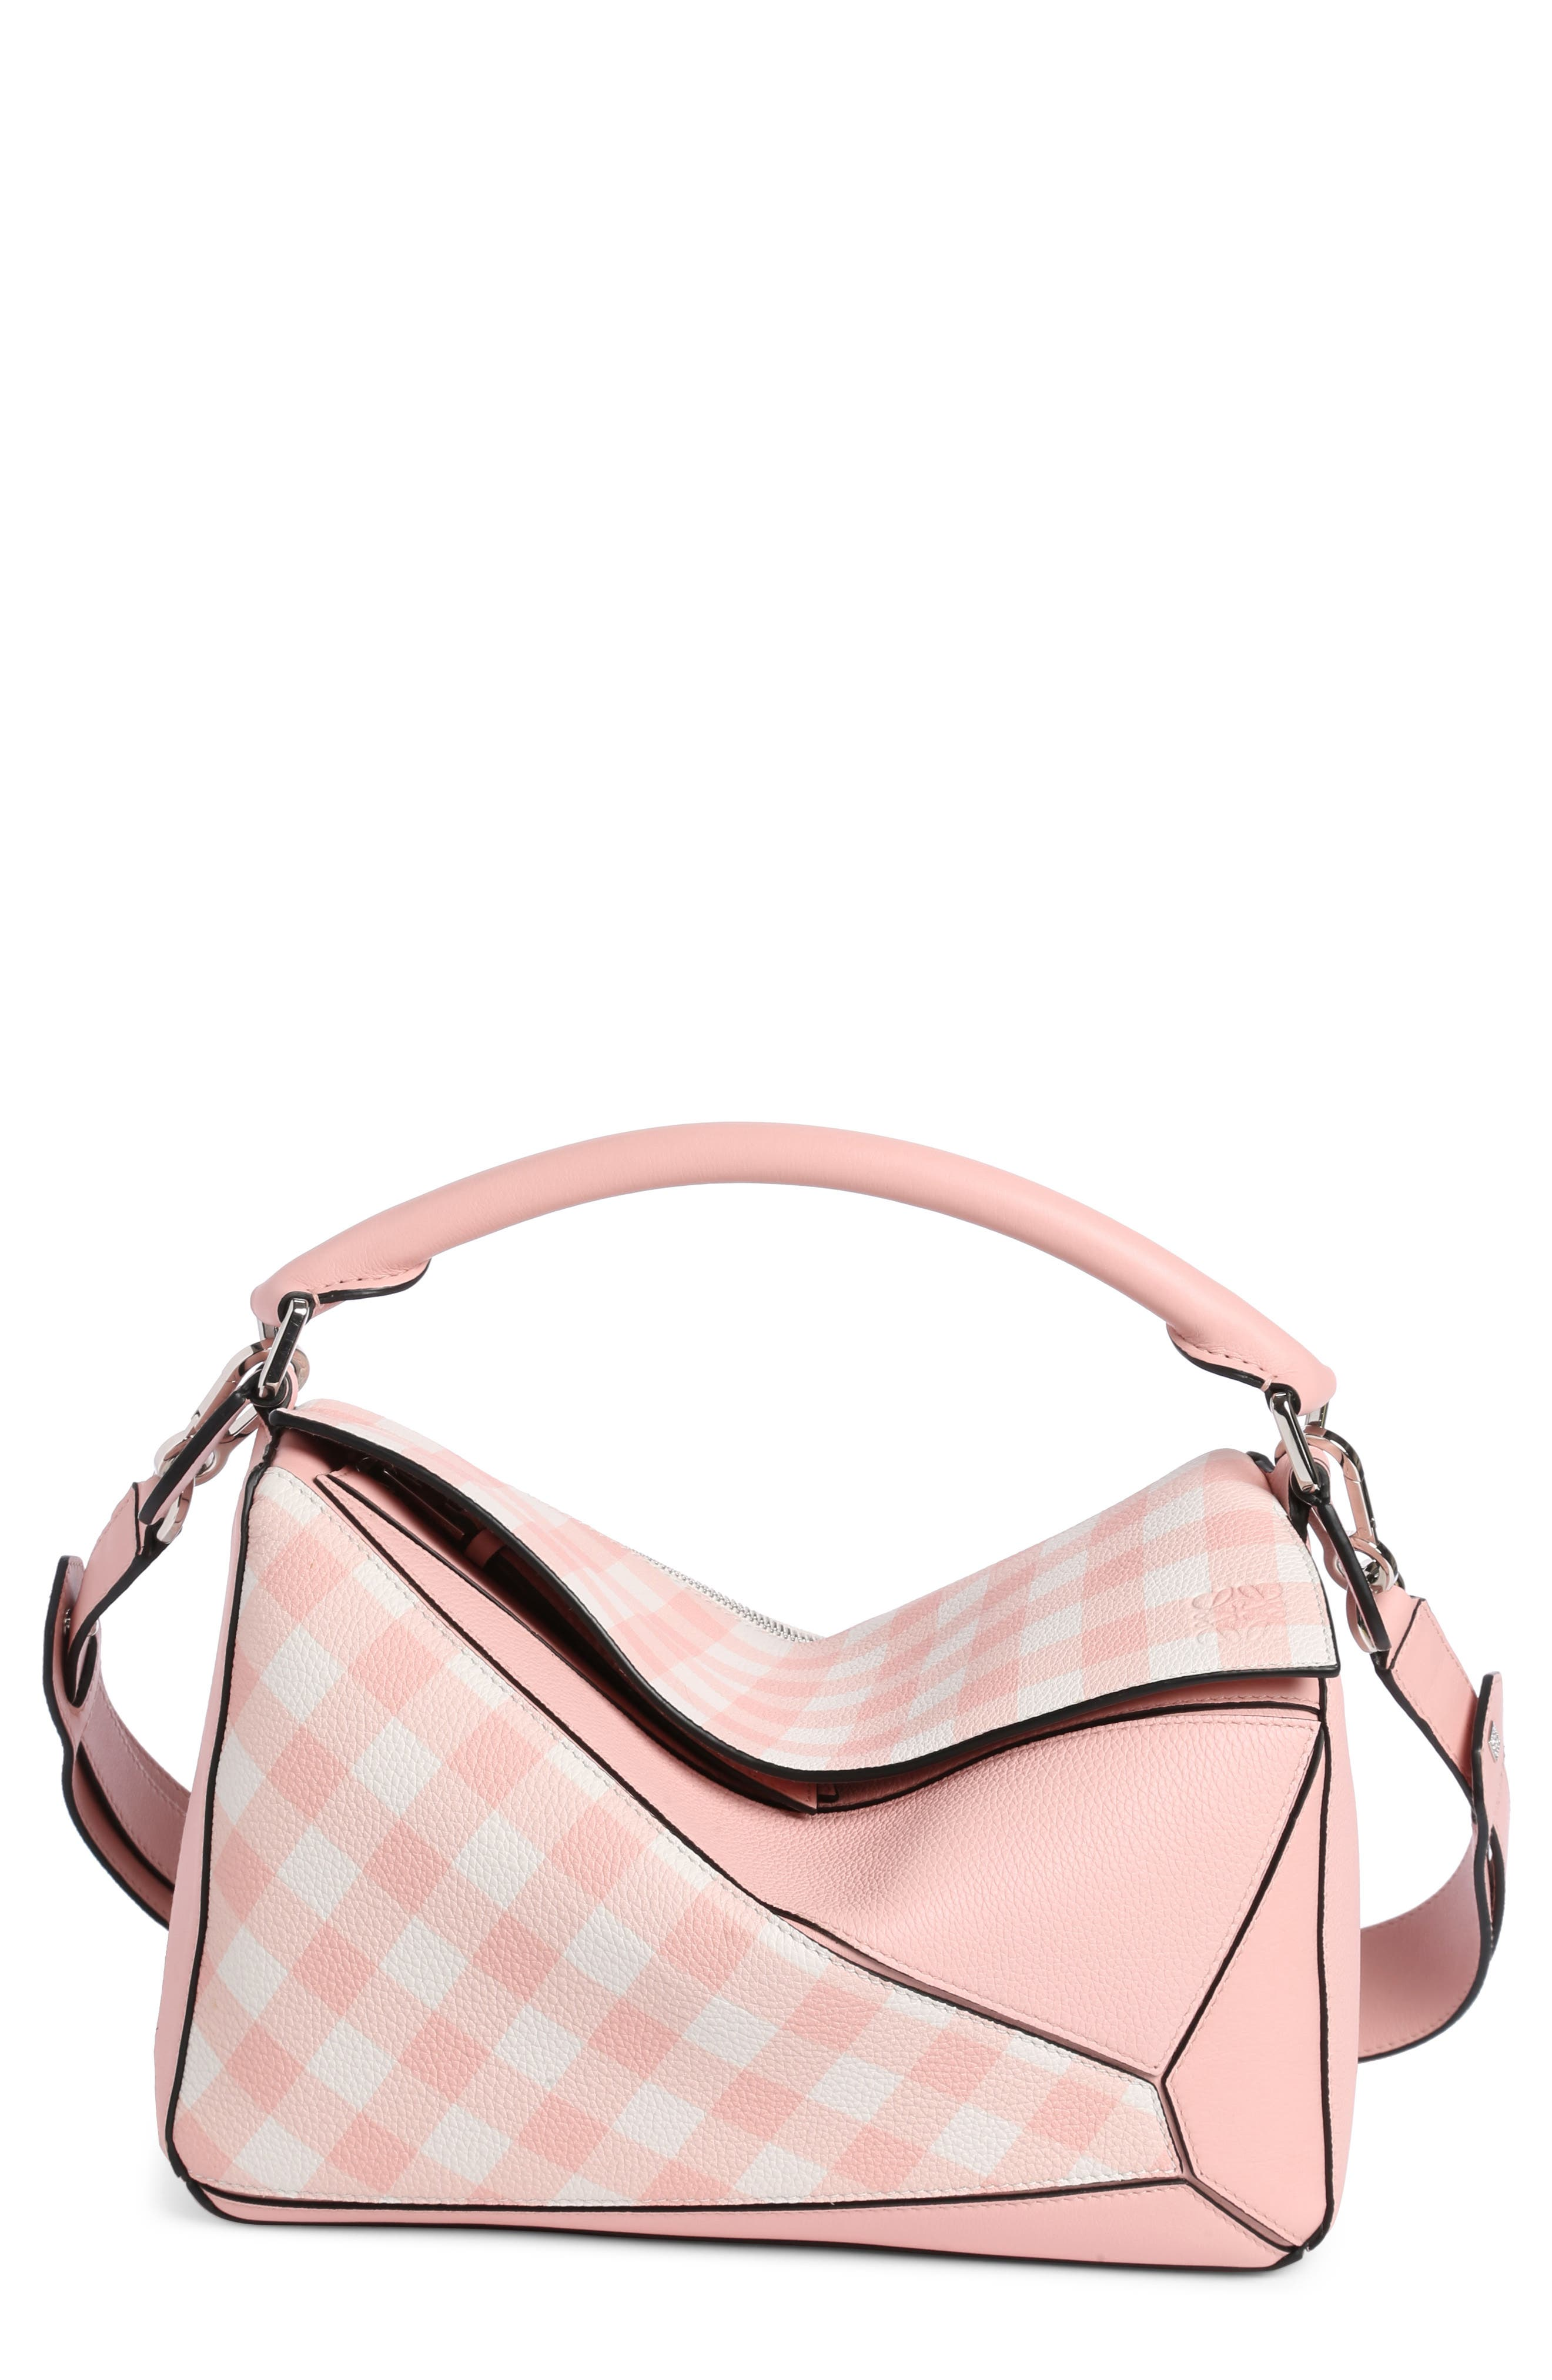 Puzzle Gingham Calfskin Leather Bag,                         Main,                         color, Salmon